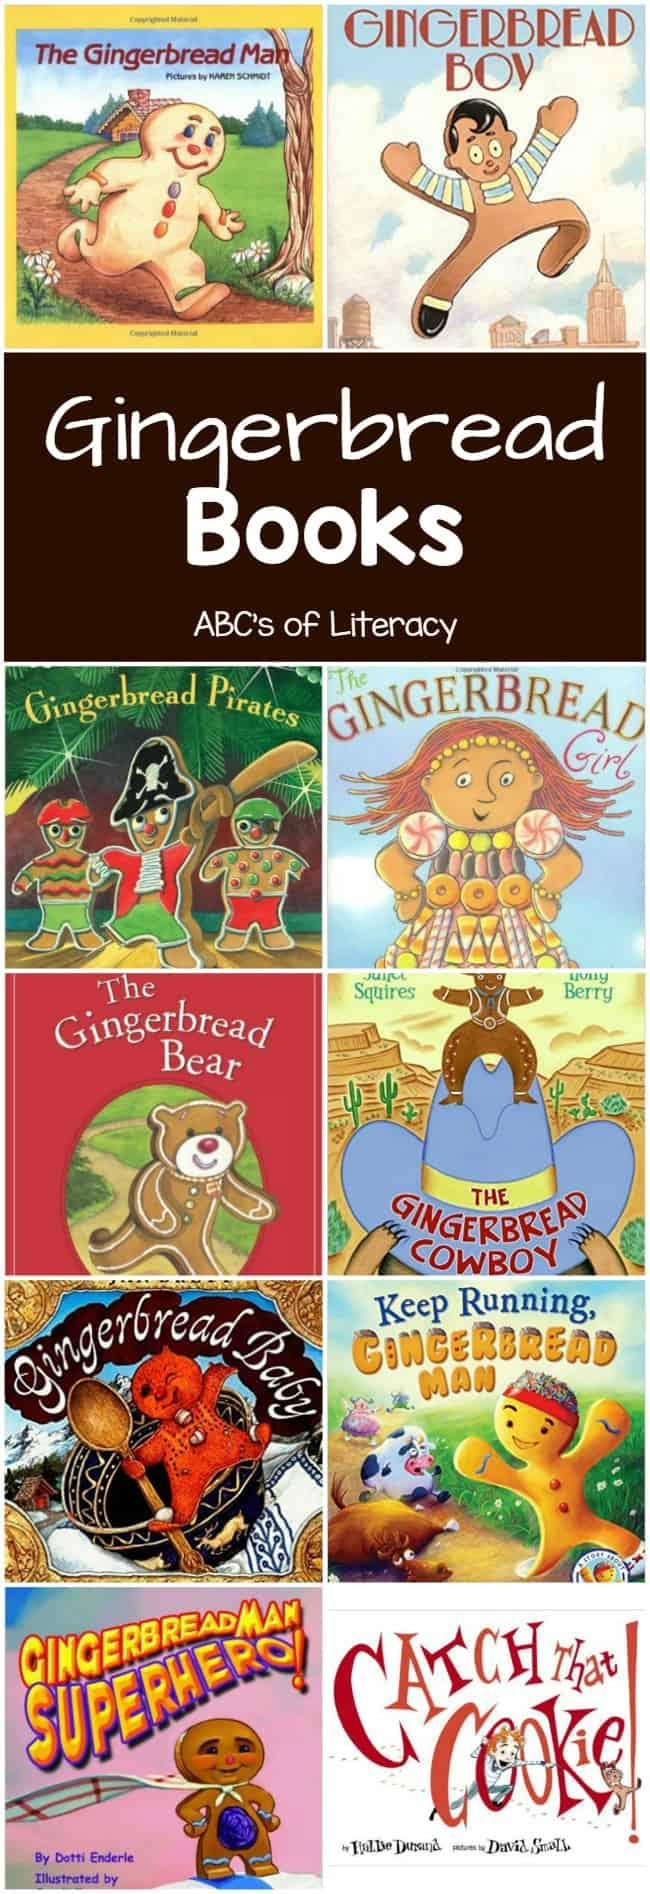 Gingerbread Man Books, Gingerbread Books, Books for Kids, Children's Books, Christmas Books, Christmas Books for Kids, Holiday Books for Kids